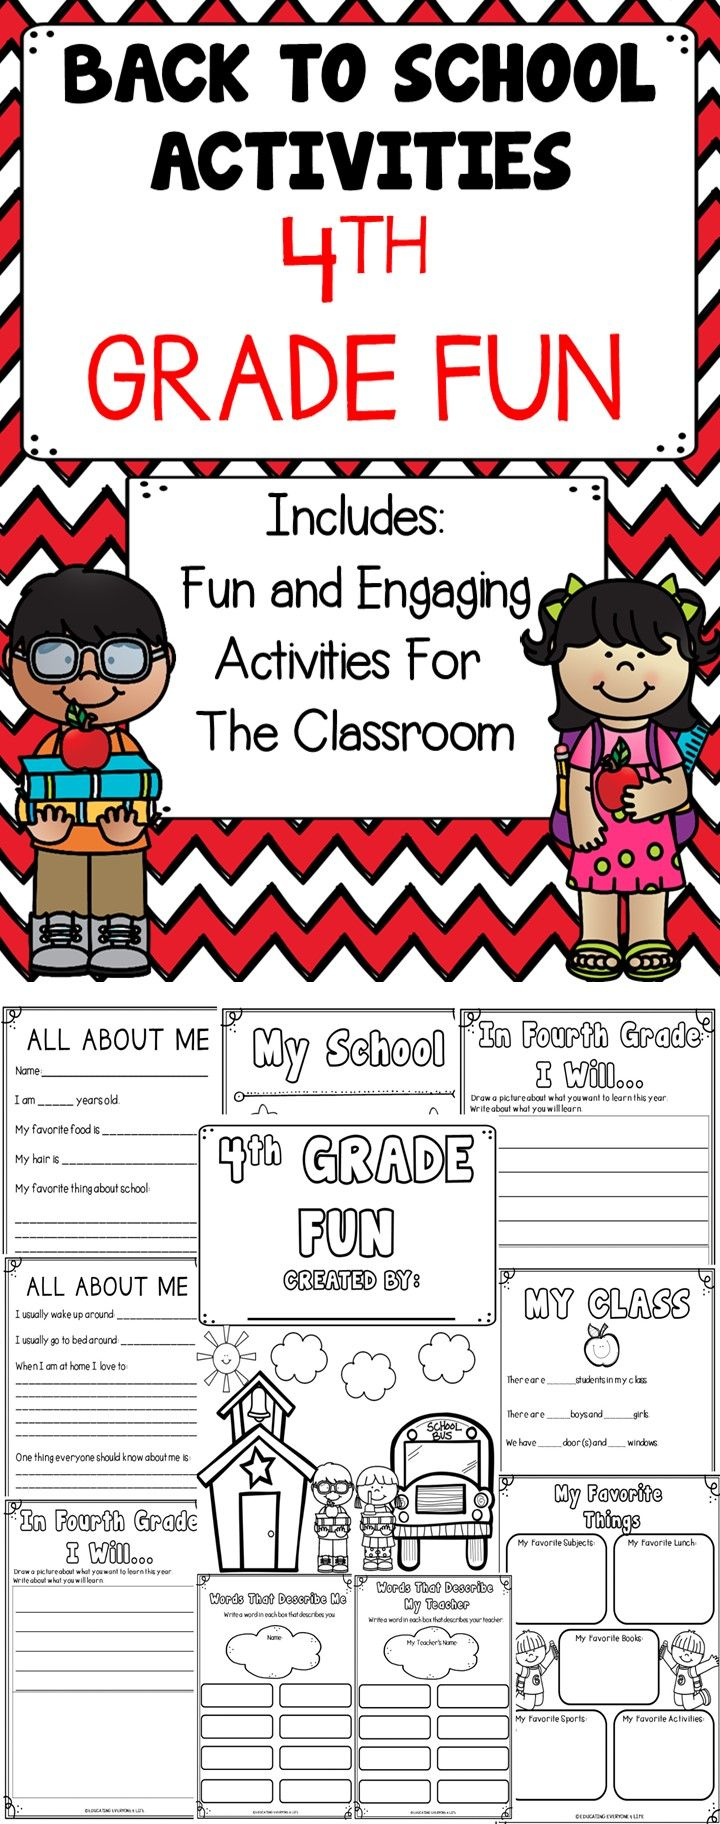 4th Grade Fun - This back to school activity pack includes fun and engaging lessons for your fourth grade classroom.